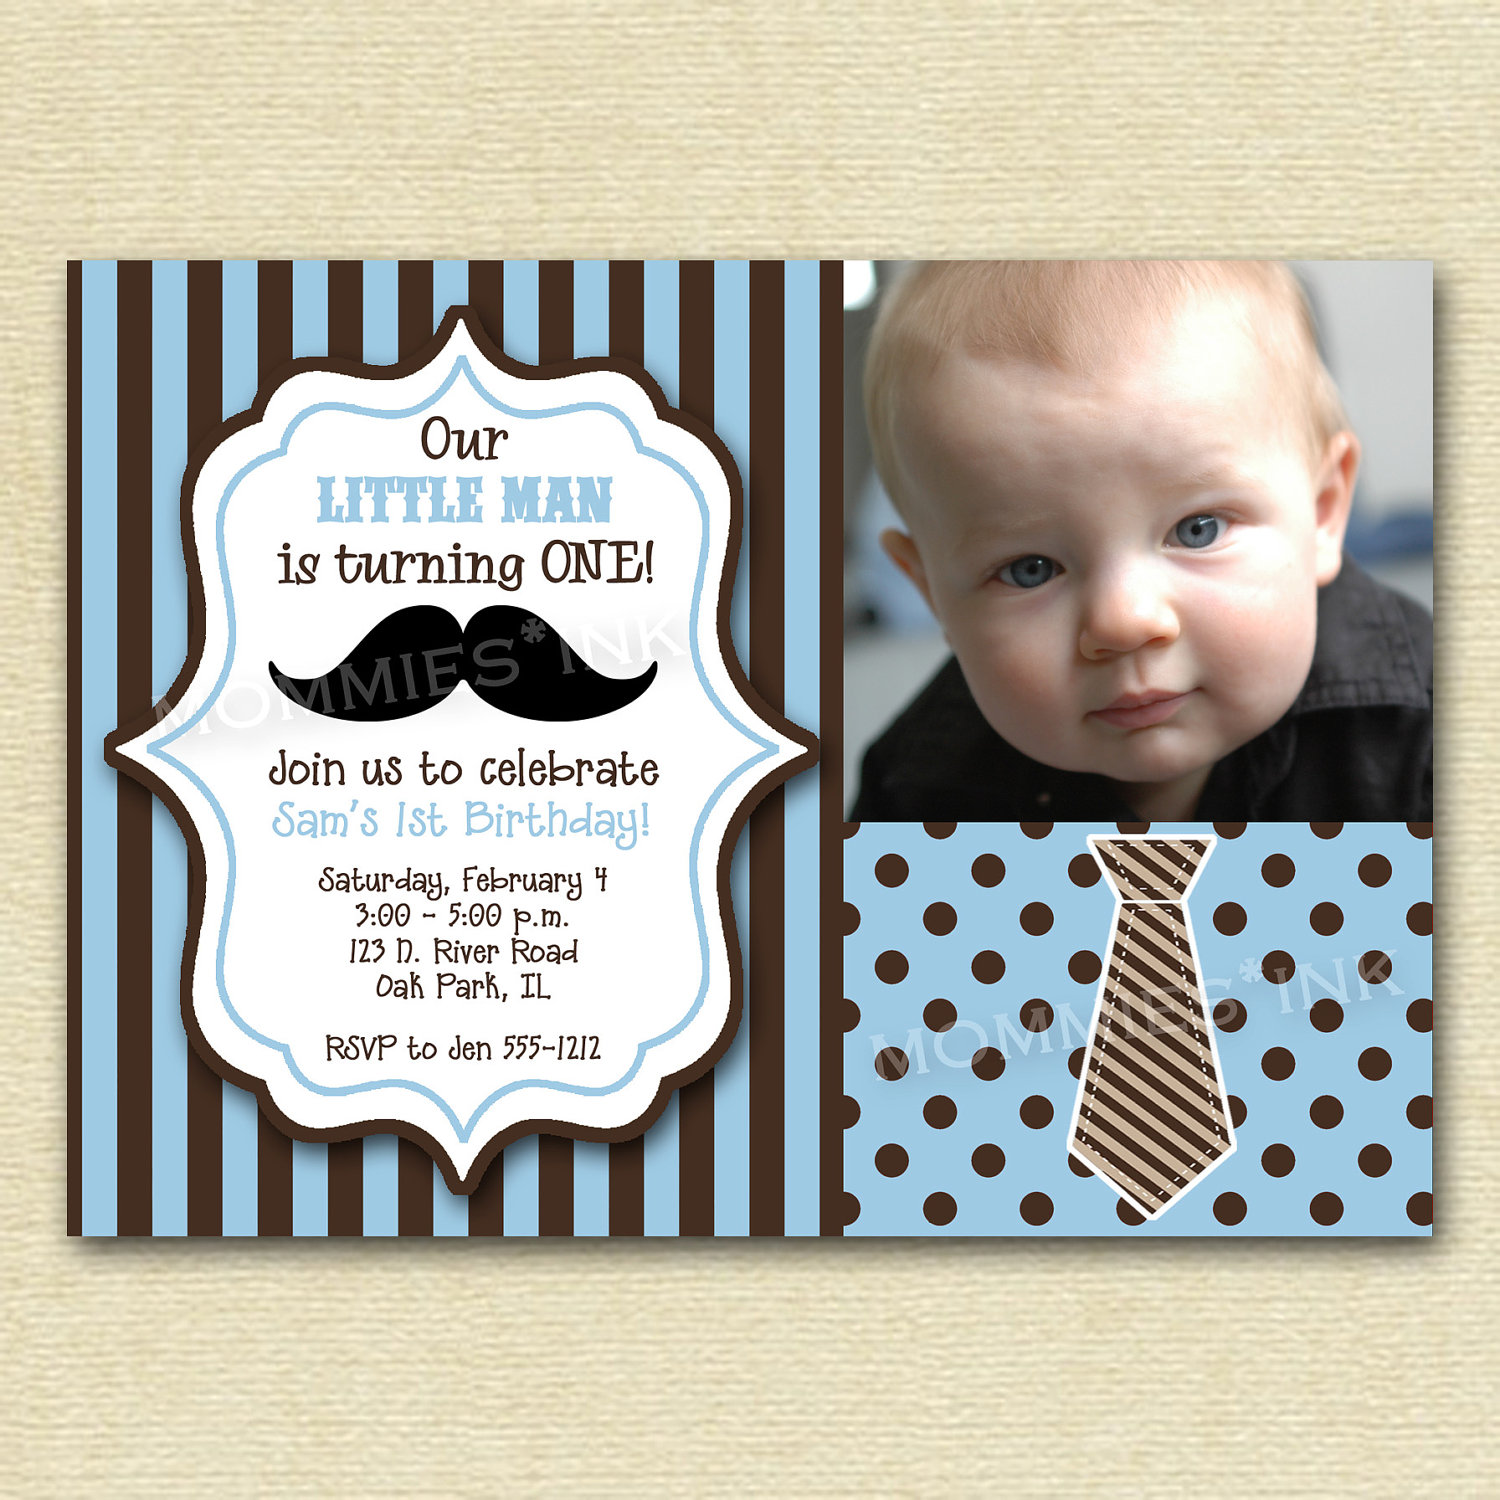 little man birthday invitation template ; little-man-birthday-invitations-with-appealing-invitations-for-resulting-an-extraordinary-outlook-of-your-Birthday-Invitation-Templates-3